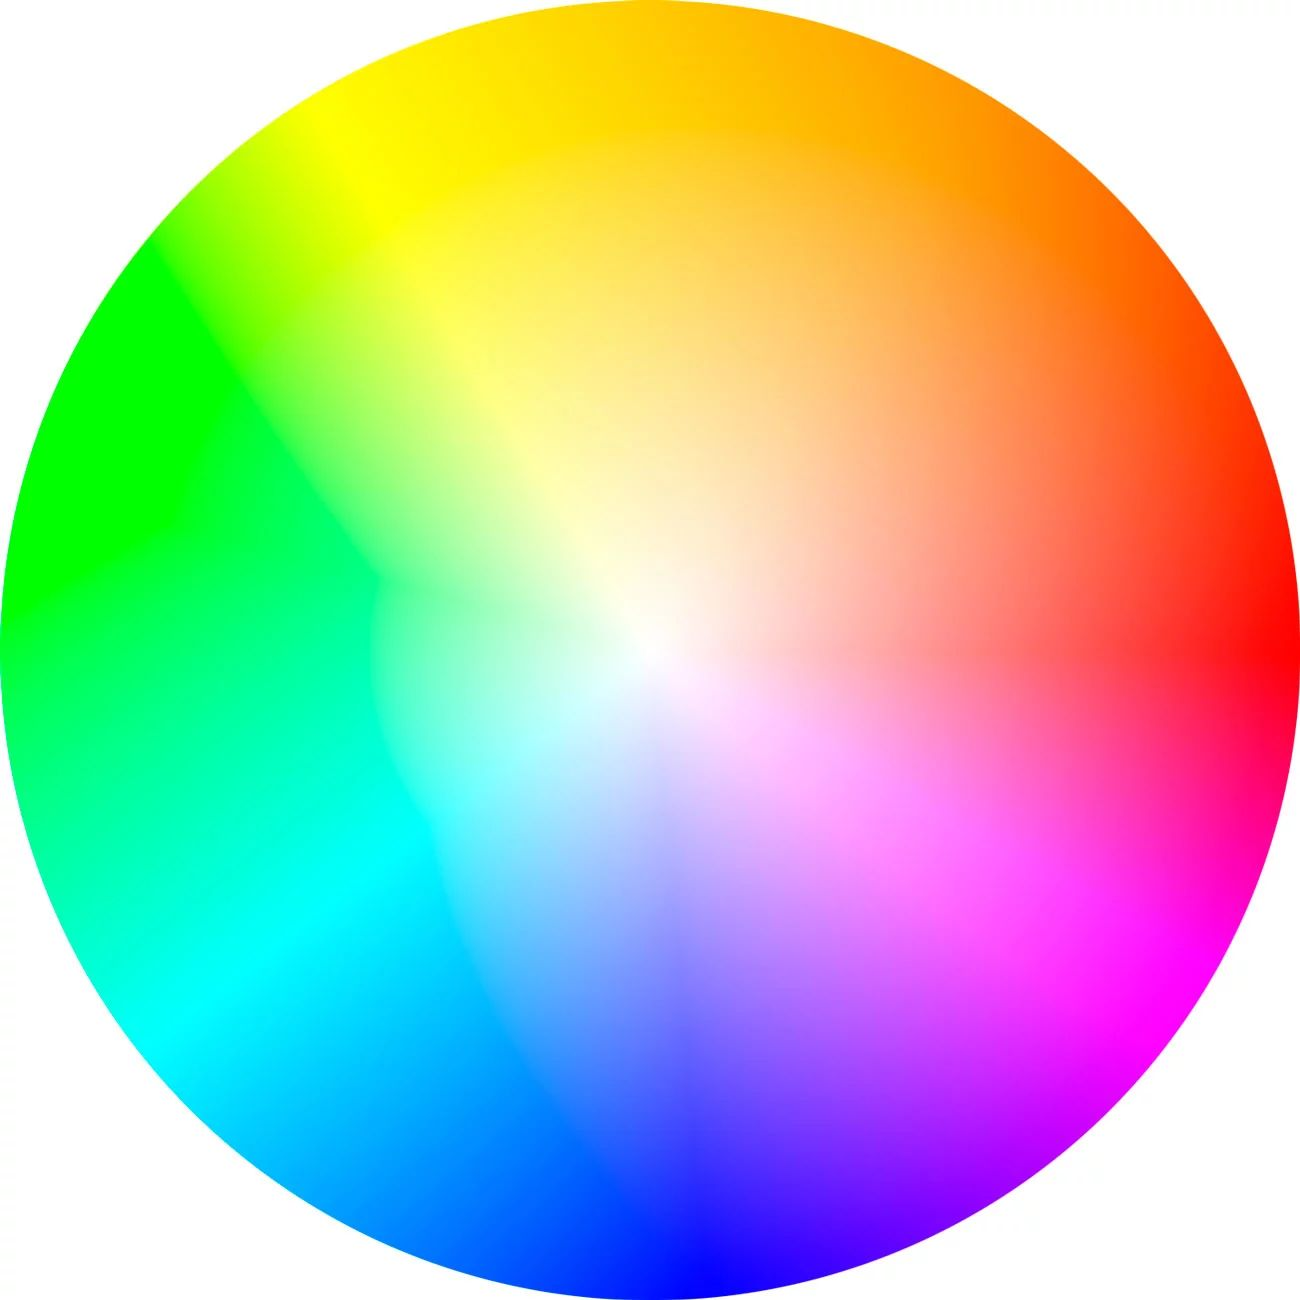 Ryb color wheel adobe color cc is a free online tool that lets you create beautiful color palettes which can be synced to your creative cloud account and